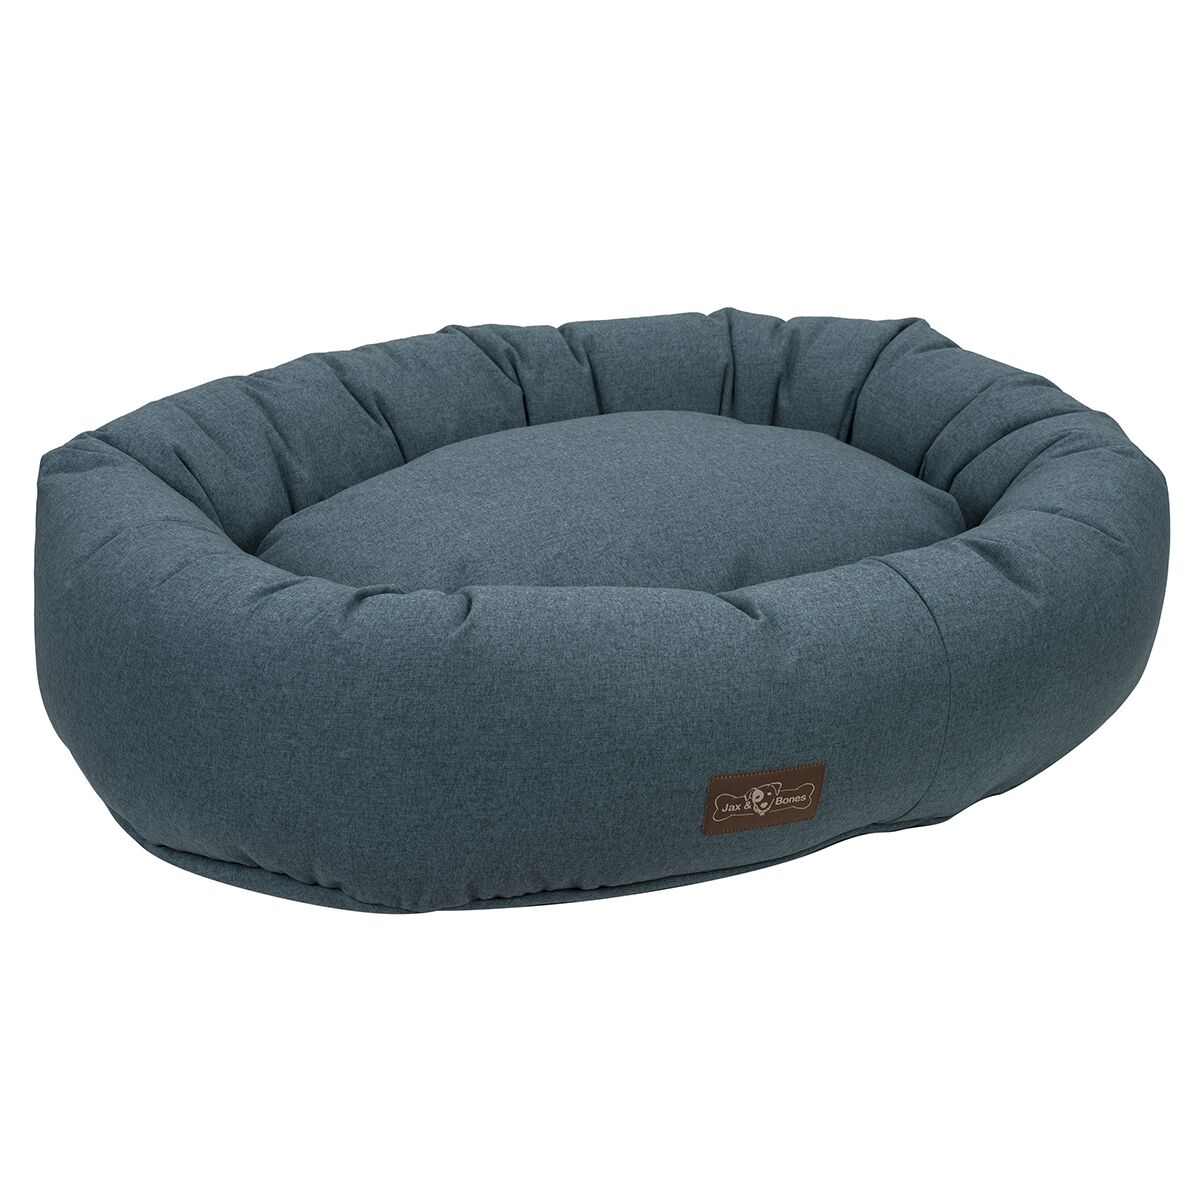 Standard Wool Blend Donut Bed Color: Juniper (Blue), Size: Small